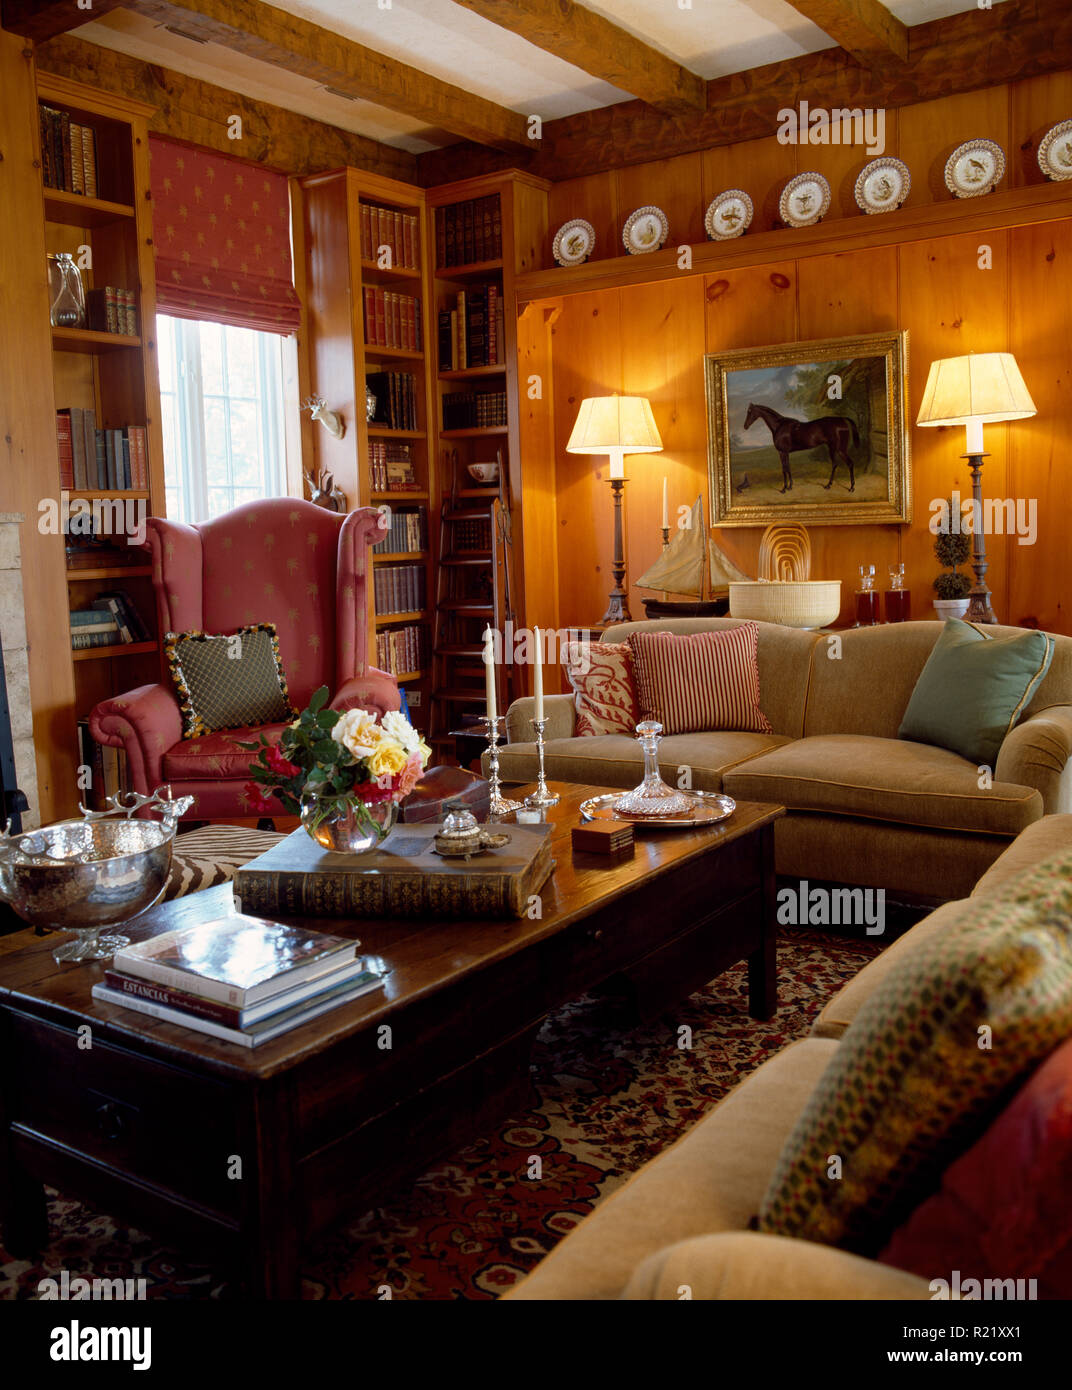 Lighted lamps and vintage wooden coffee table in sitting room